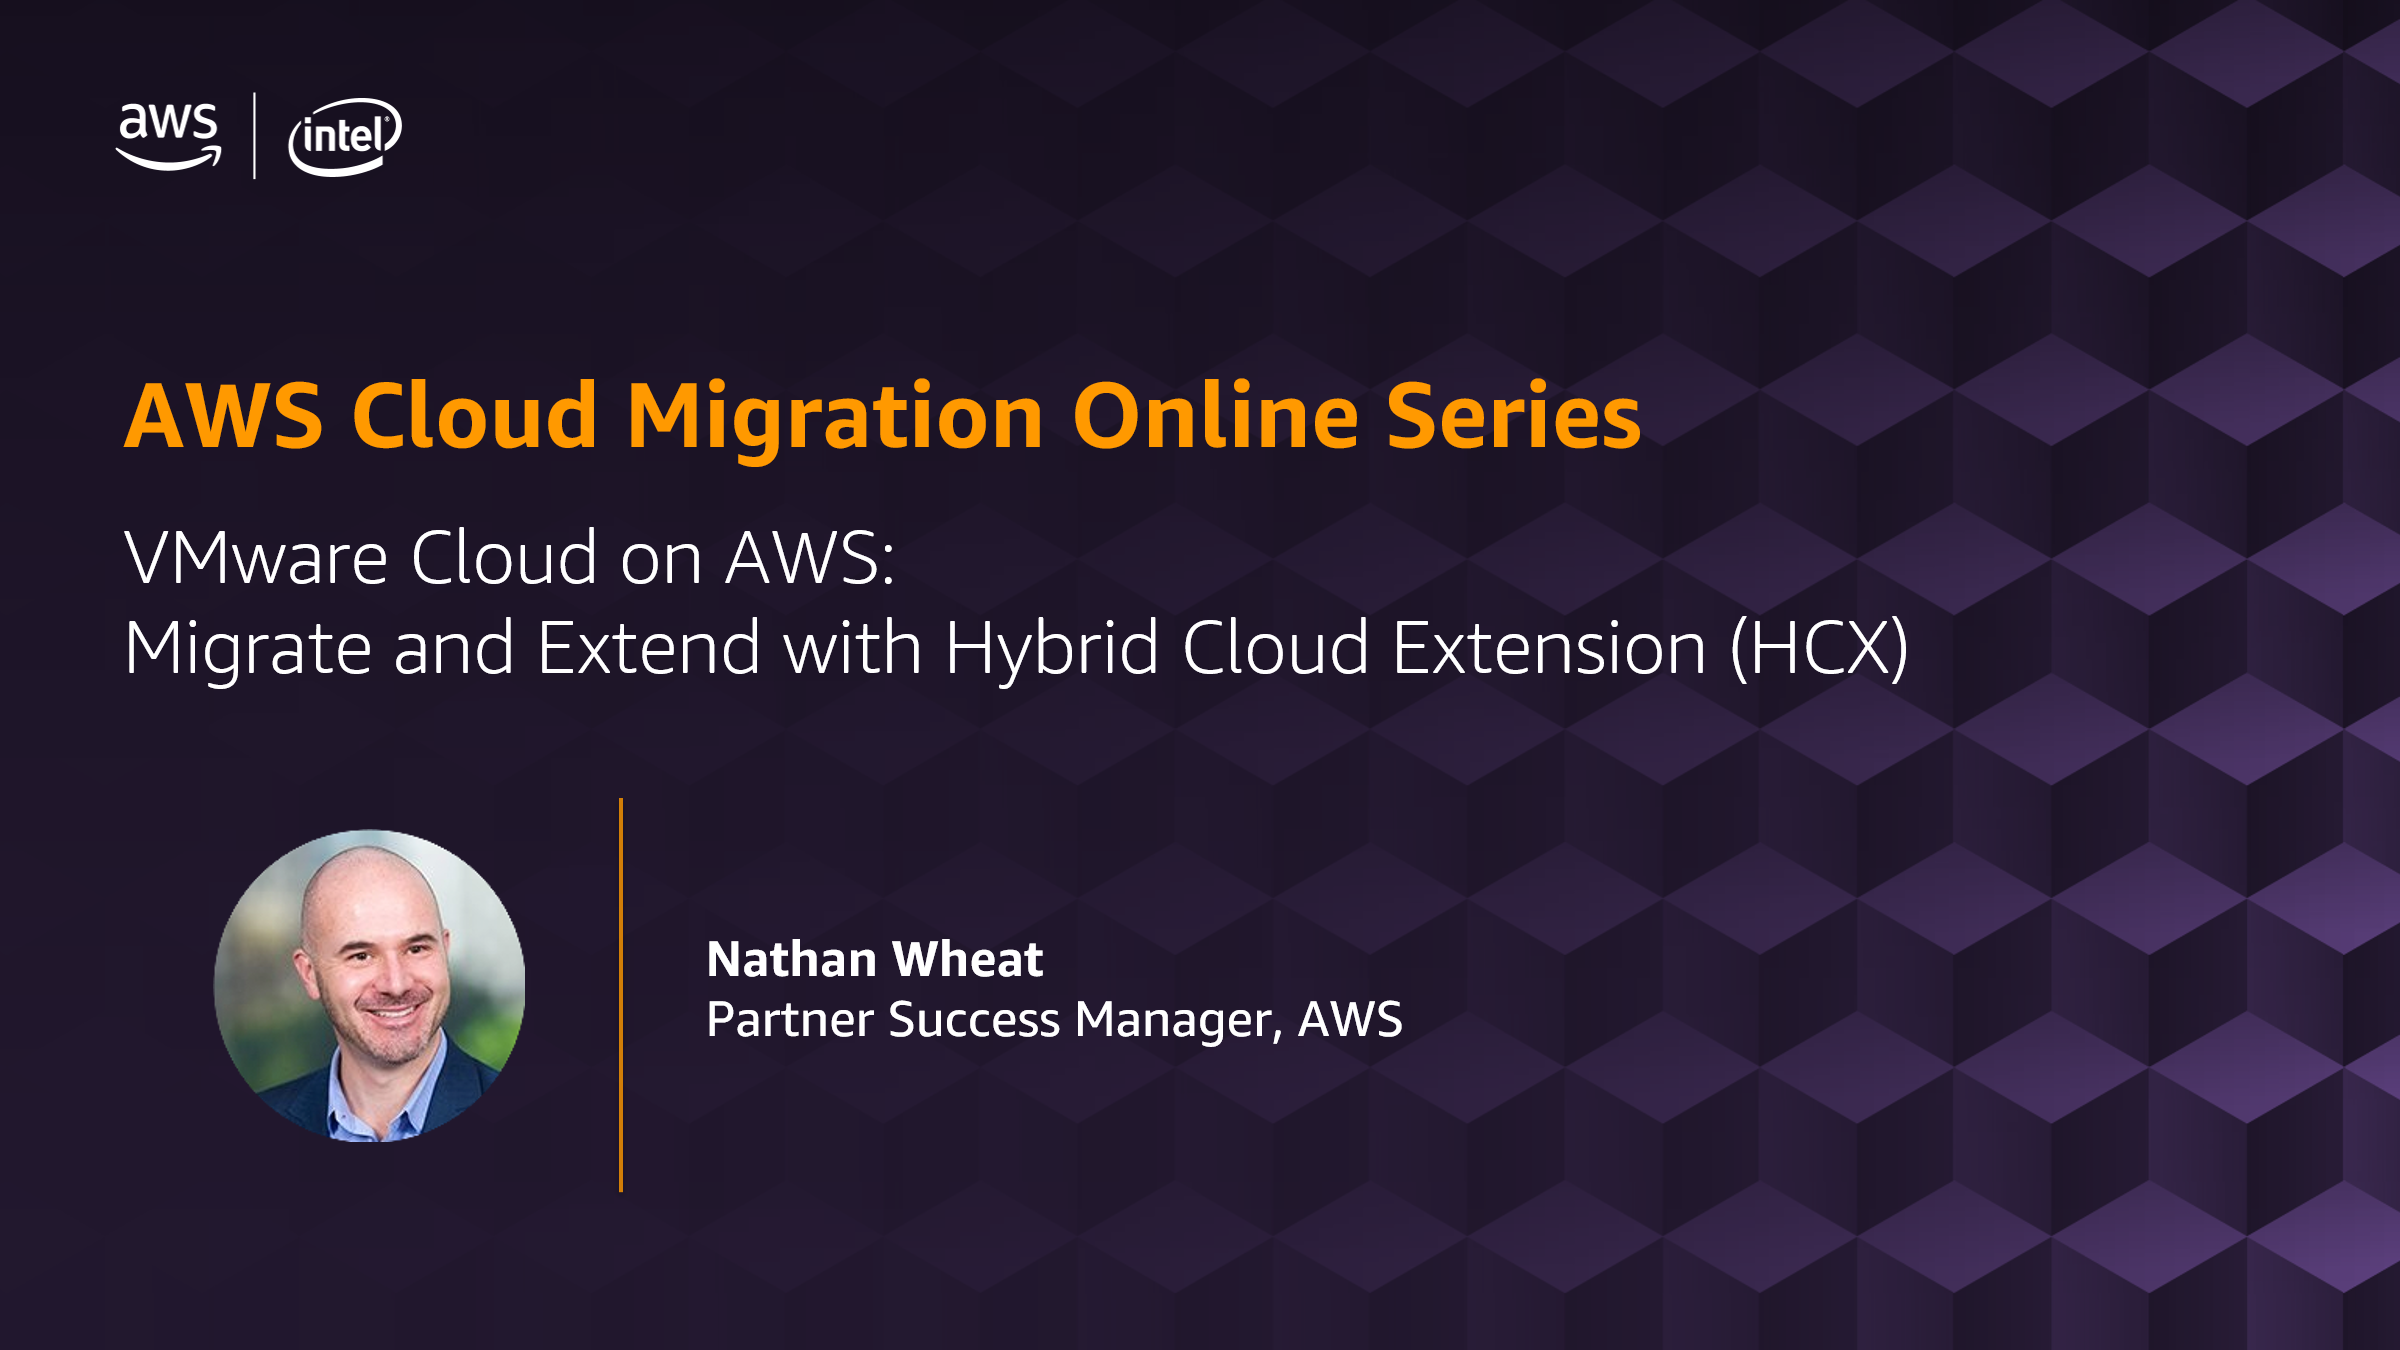 Migration Online Series: VMware Cloud on AWS - Migrate and Extend with Hybrid Cloud Extension (HCX)